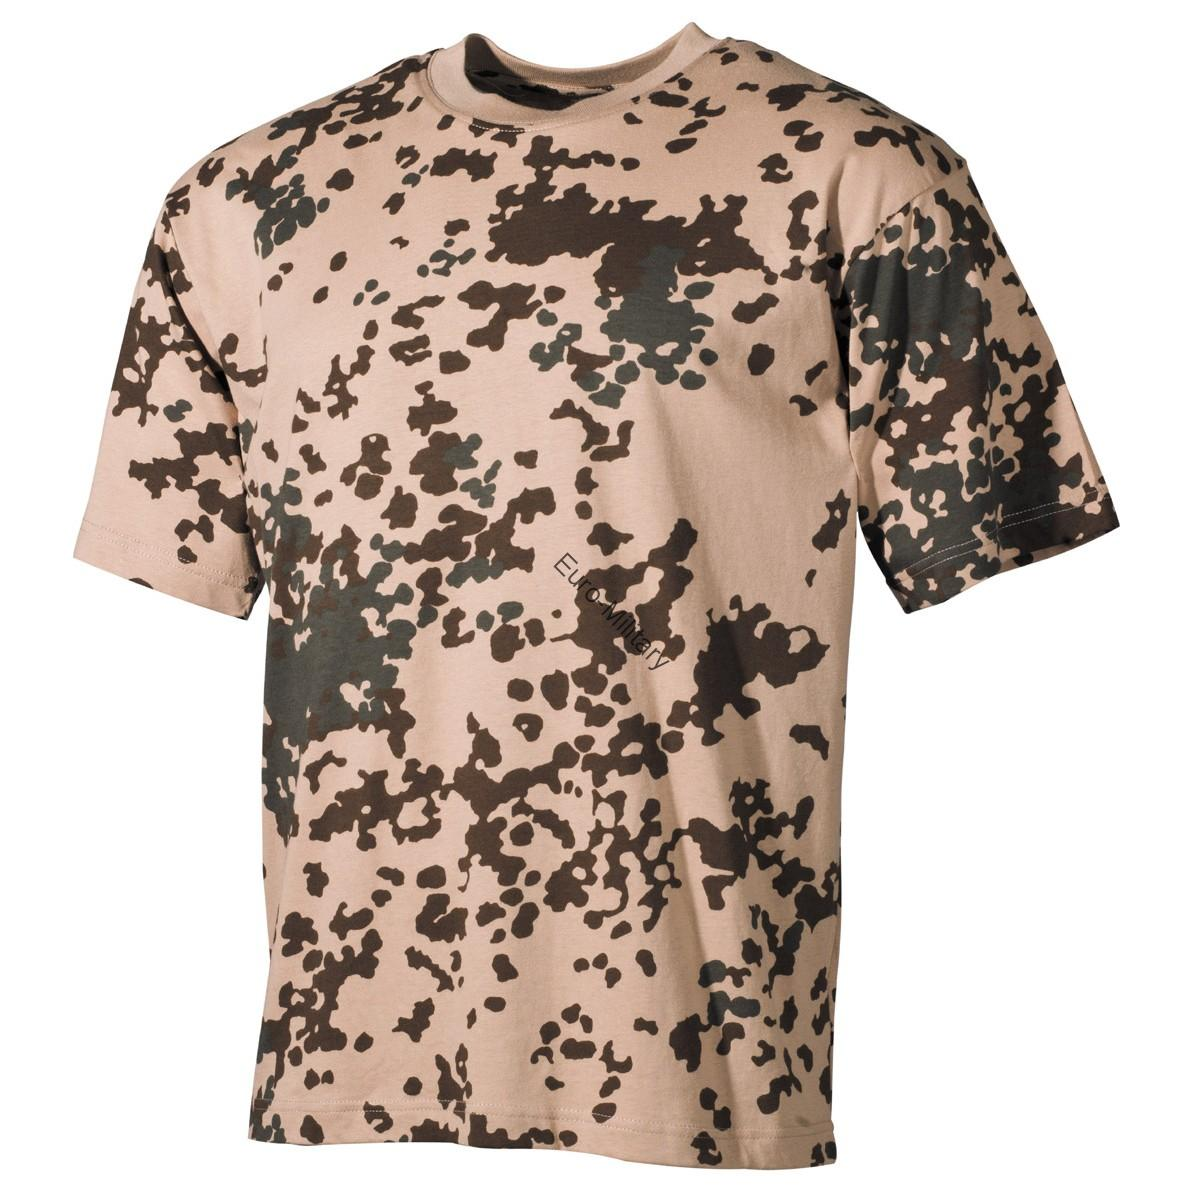 BW Germam Army Tropico Camo T-Shirt - Short Sleeve